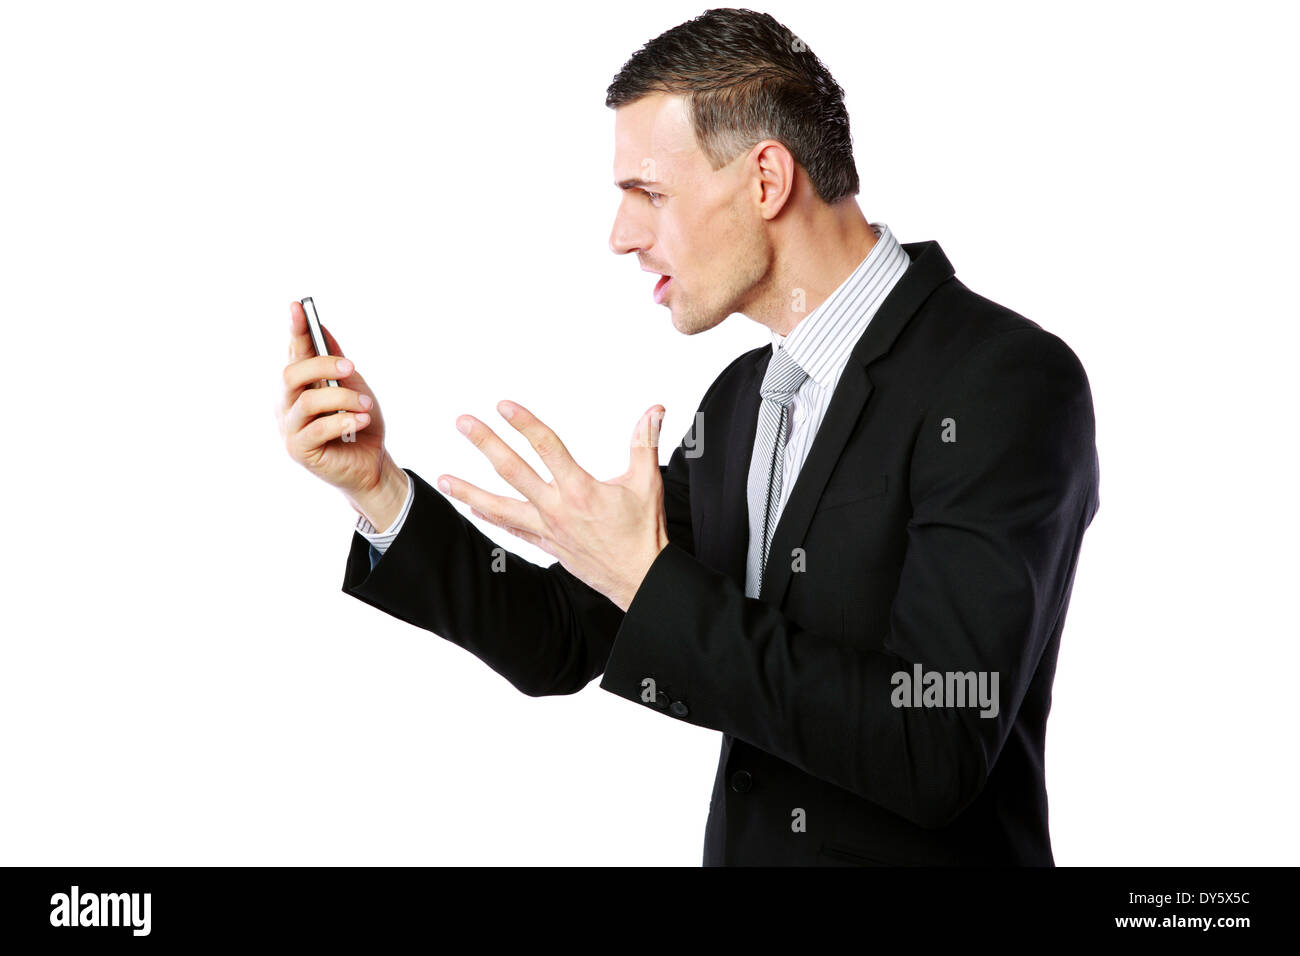 Angry businessman yelling on his cell phone over white background - Stock Image